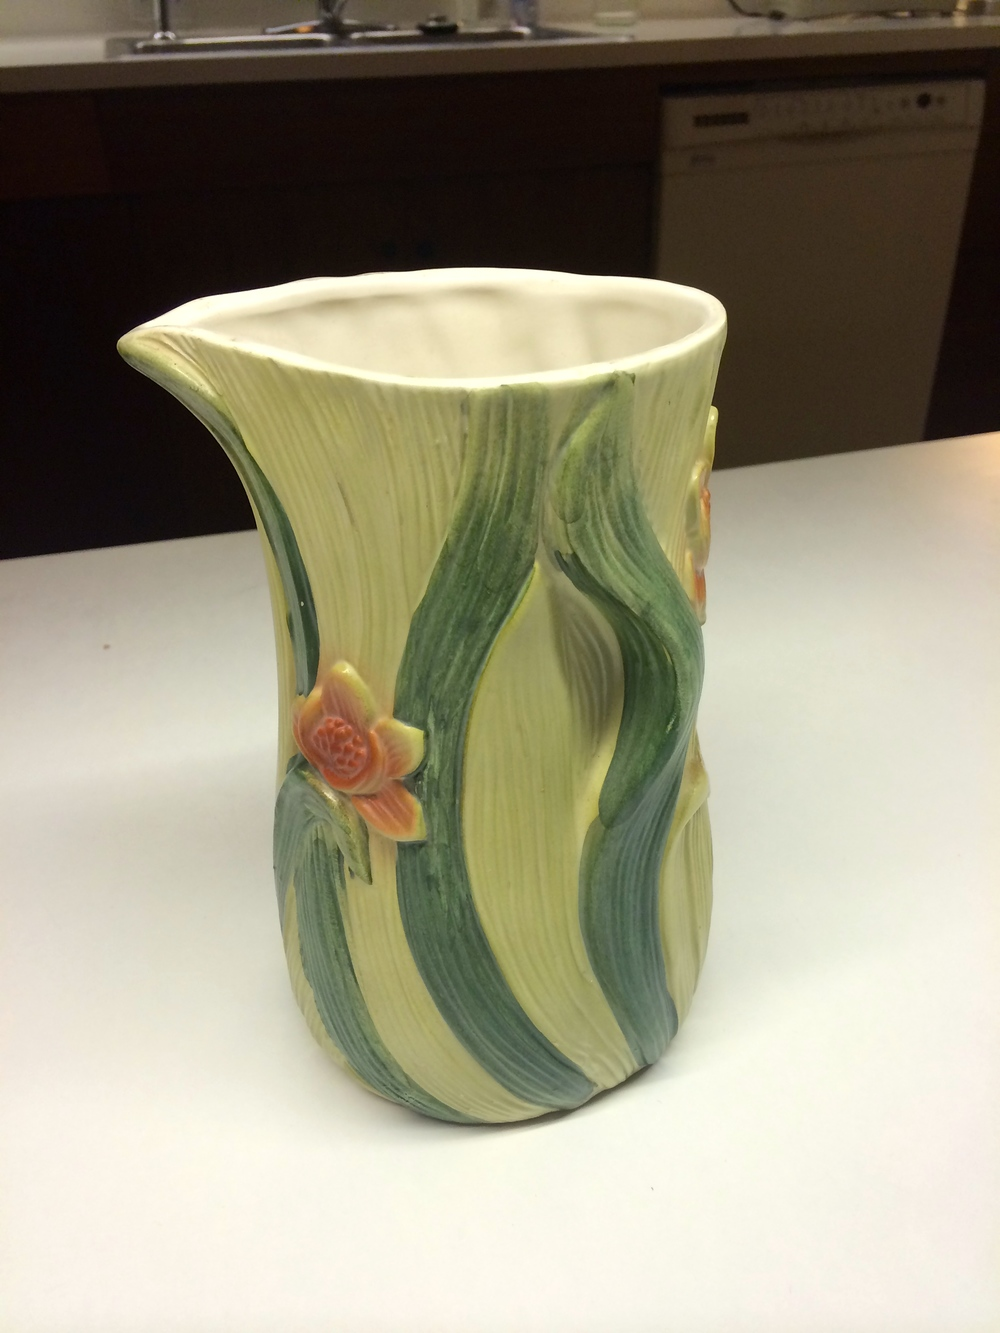 This vase belonged to Ruth Fisher (Frances Conroy) on Six Feet Under and it's so Ruth.